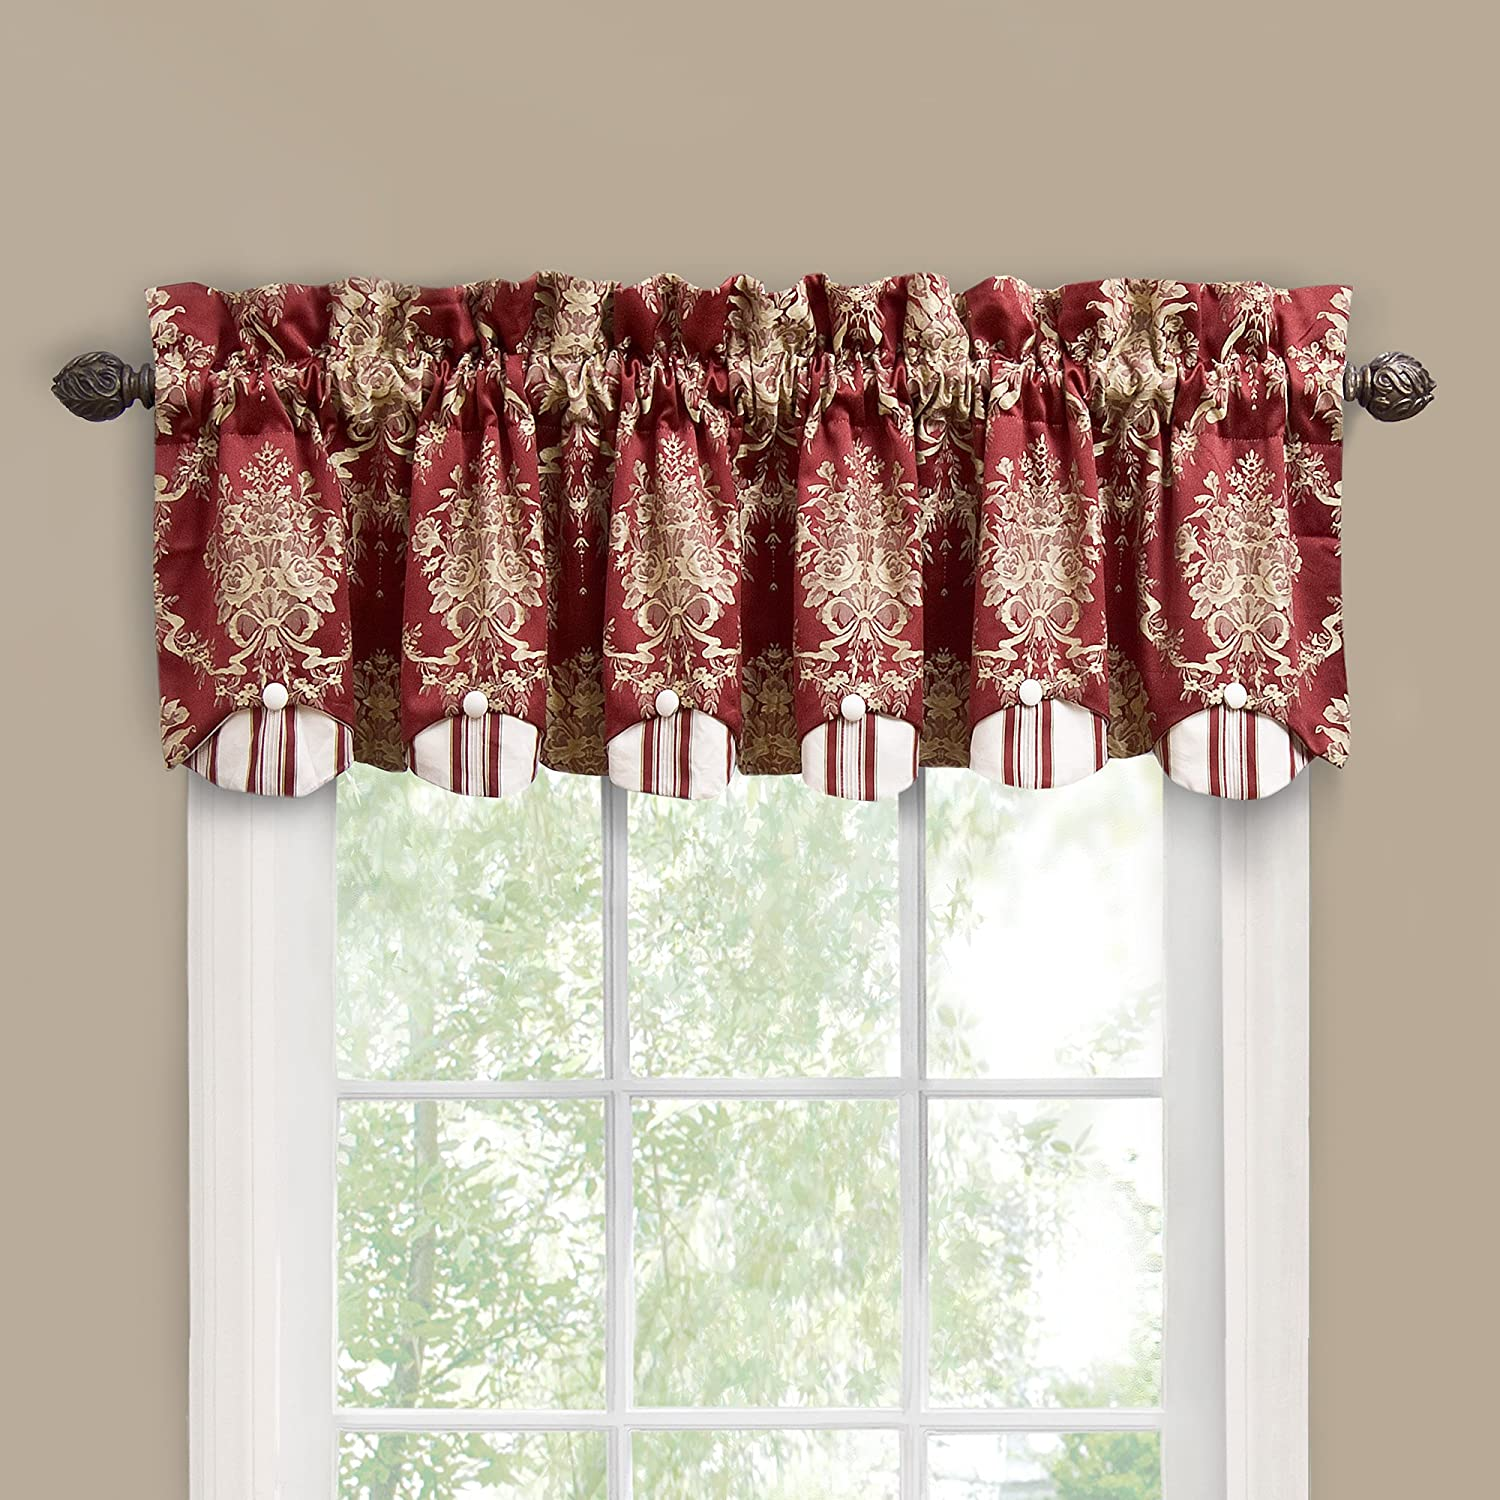 Waverly Rose Momento Window Valance, Merlot , New, Free